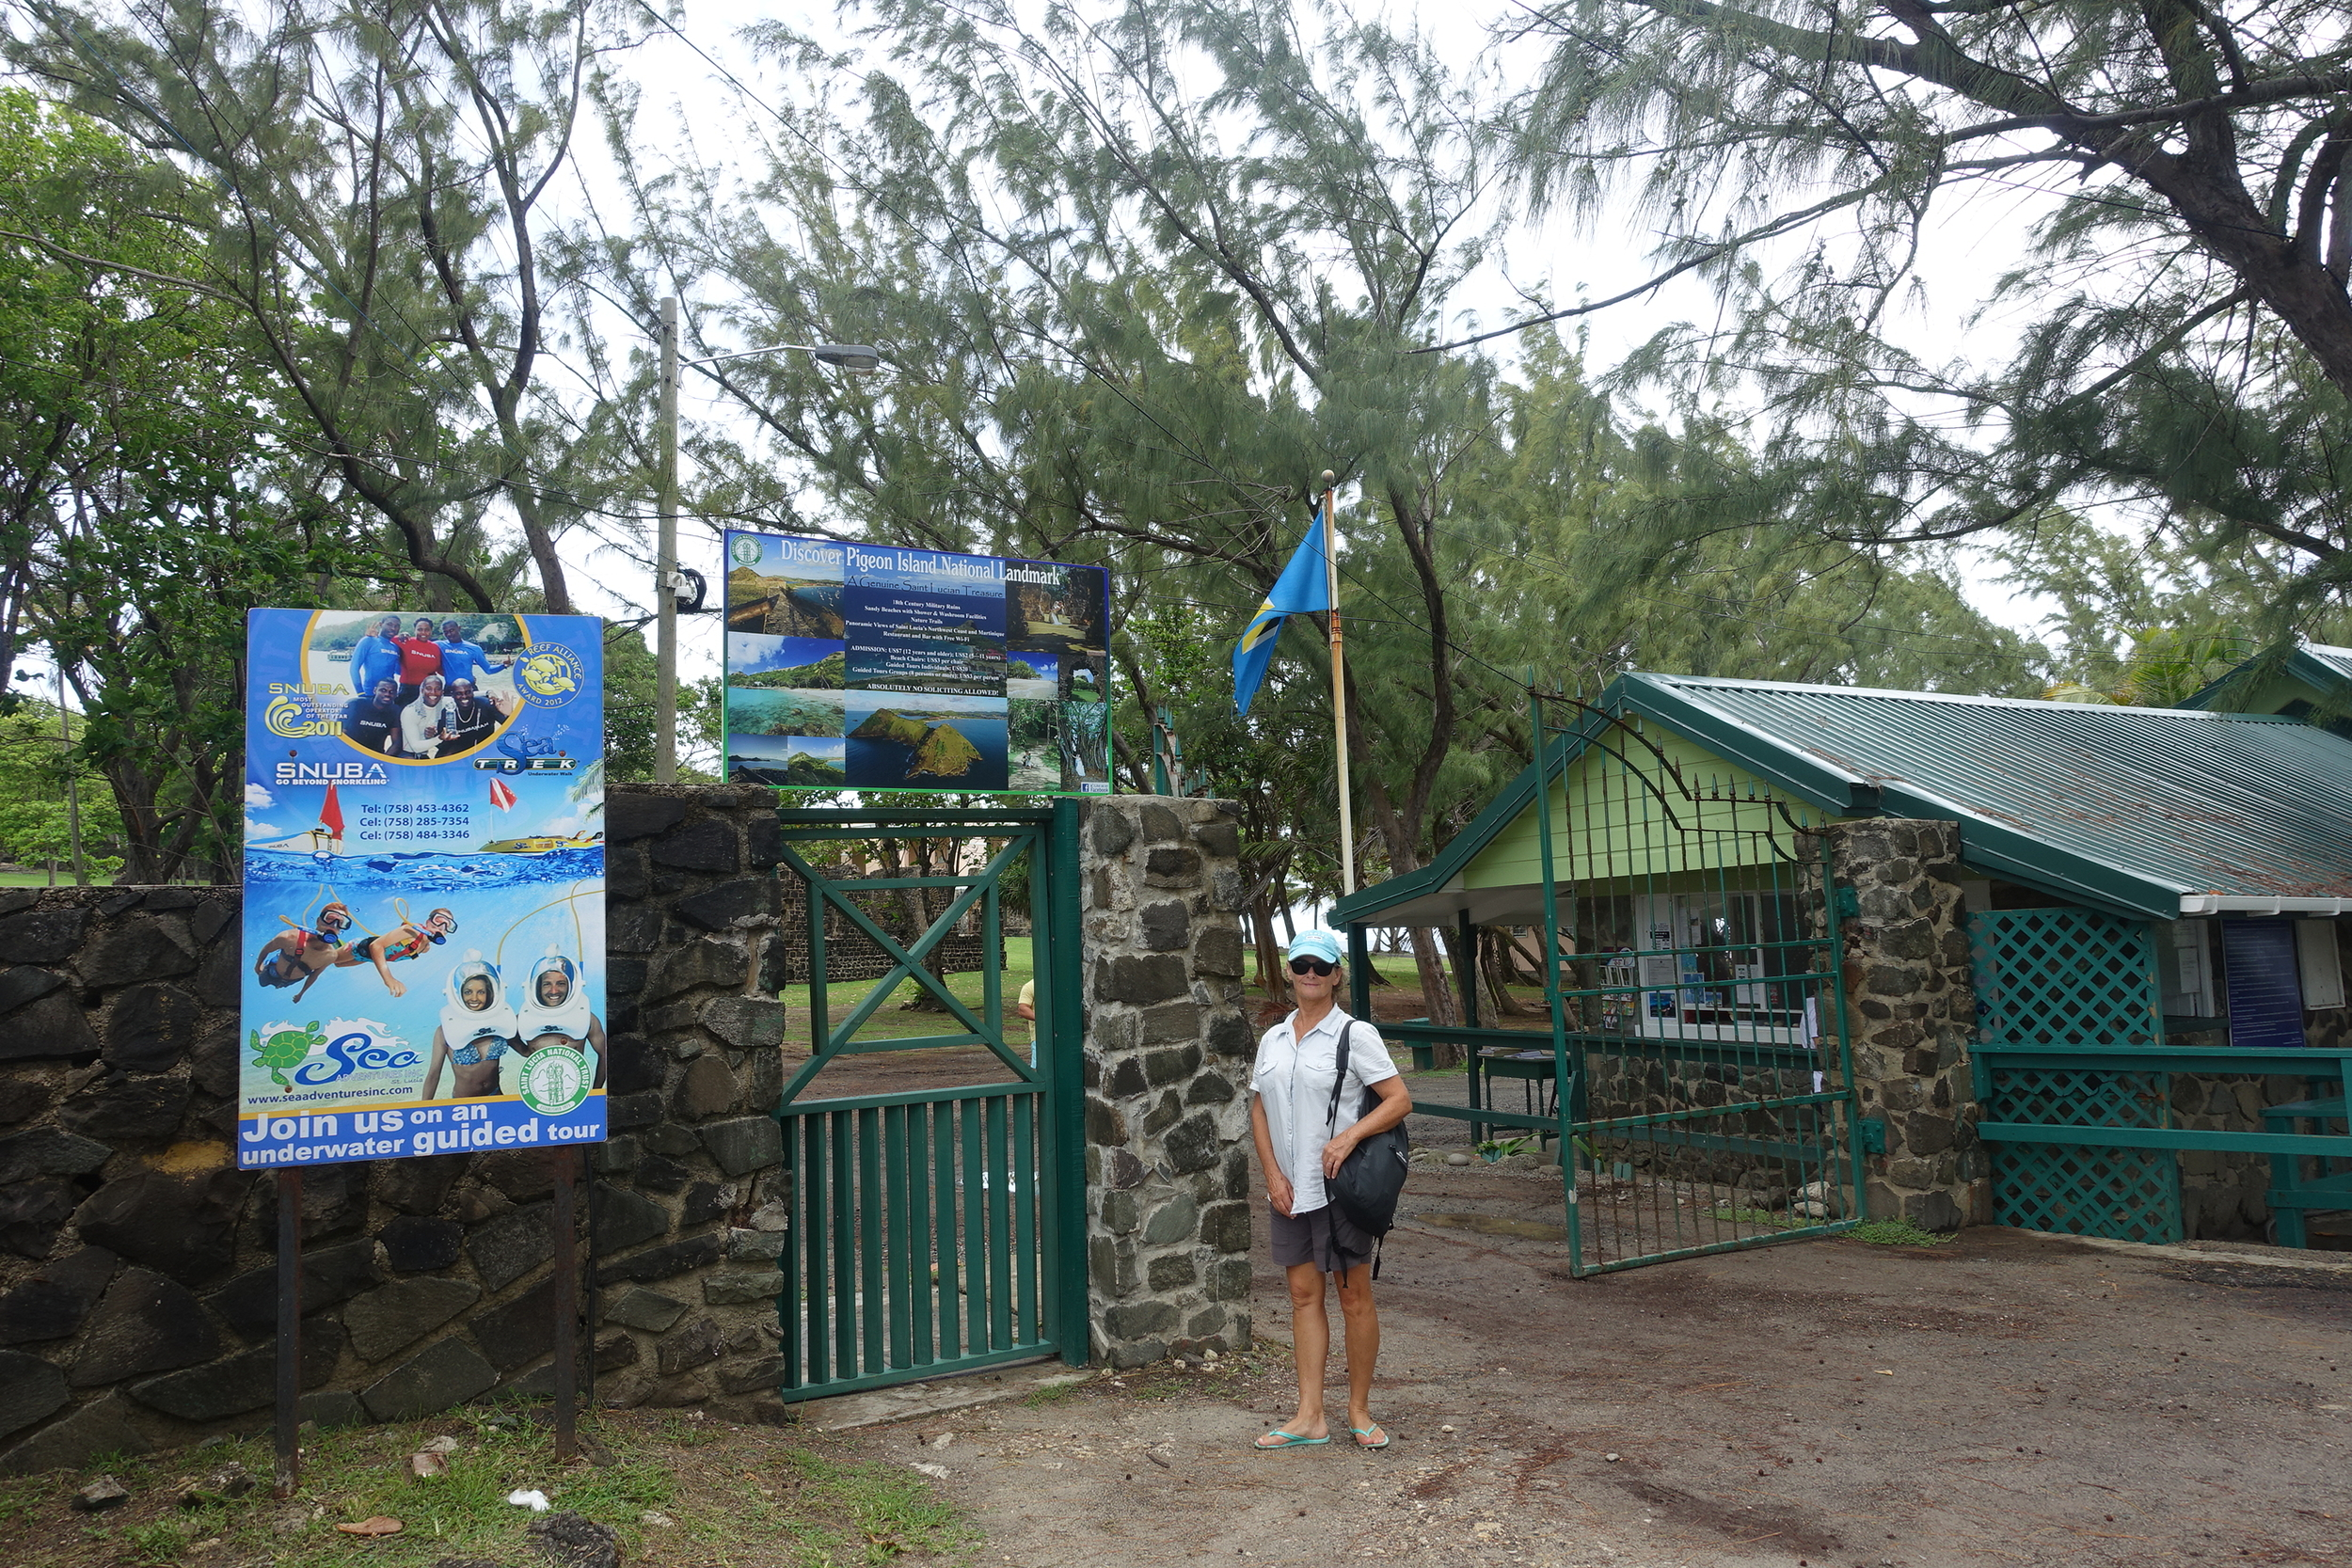 entrance to Pigeon island